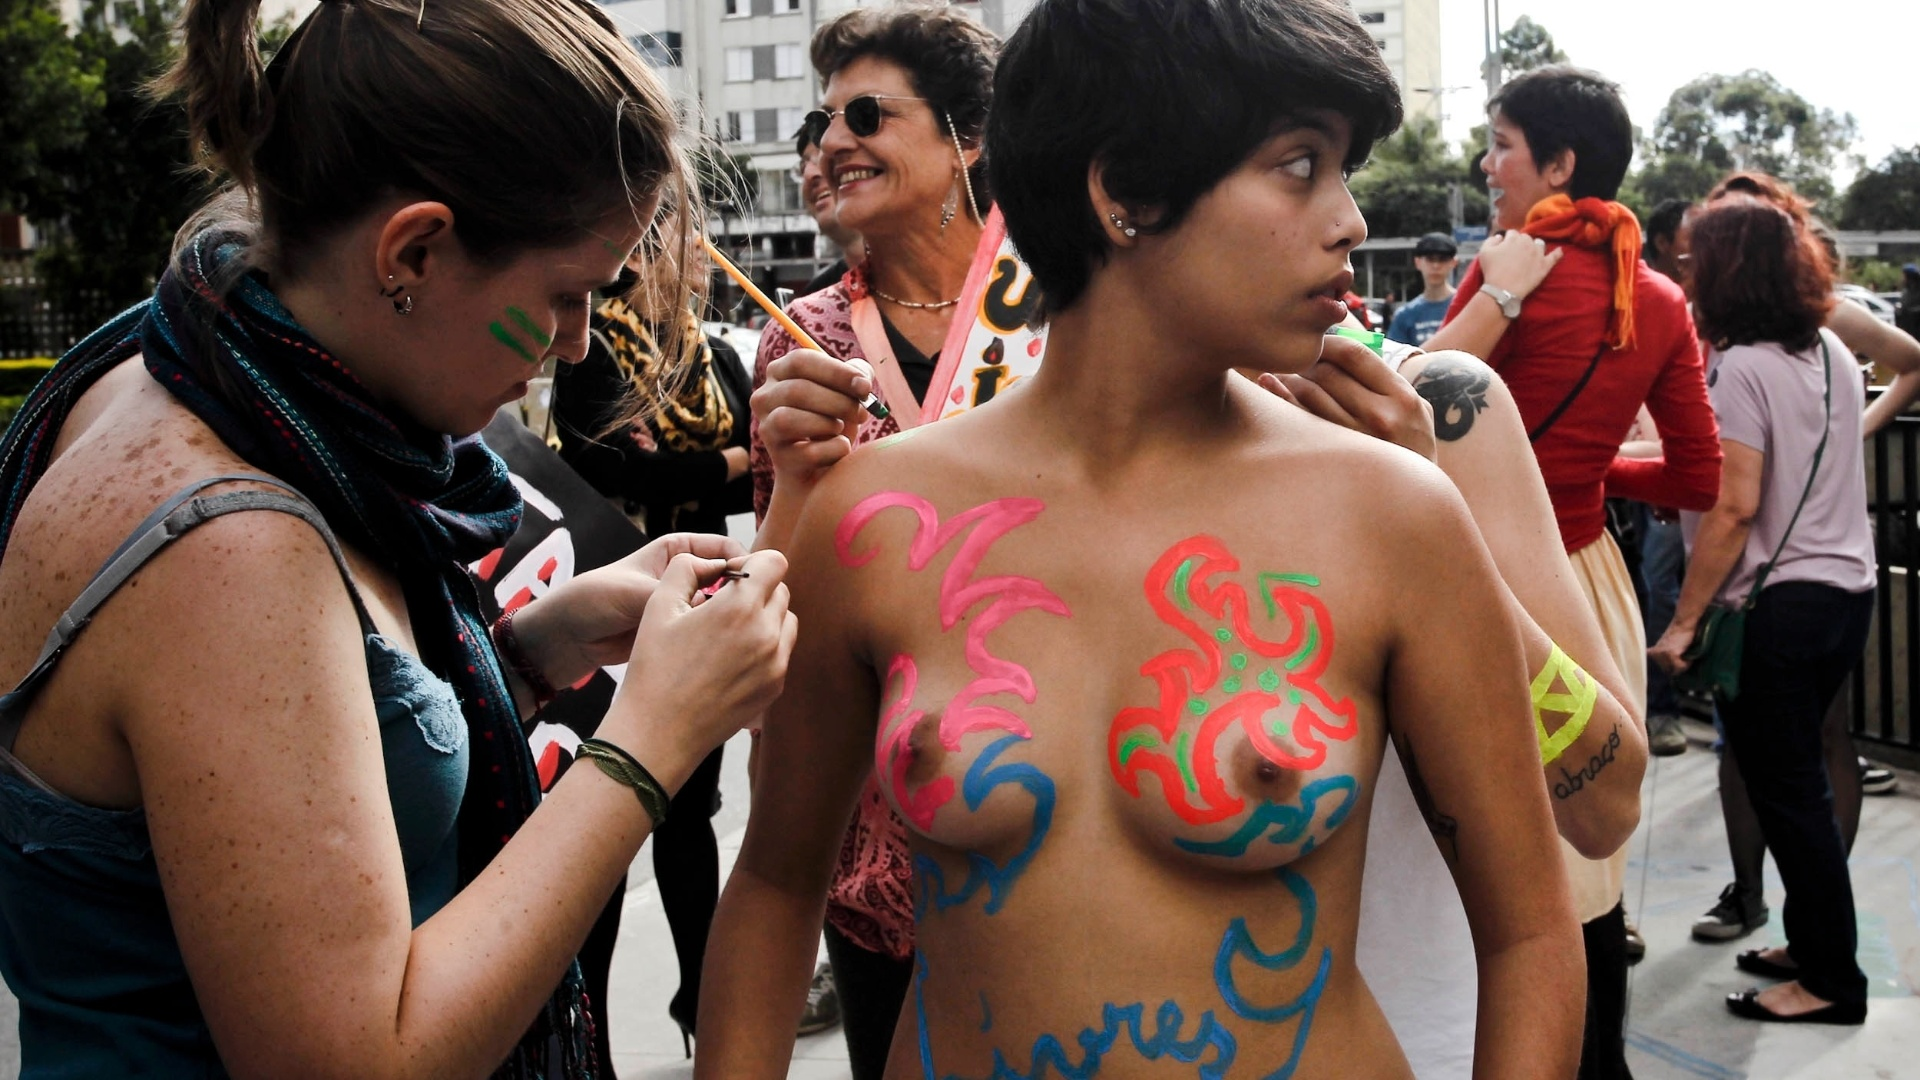 26.mai.2012 - Mulheres pintam o corpo para participar da Marcha das Vadias, na tarde deste sbado (26), em So Paulo. O protesto contra a discriminao sexual e a violncia contra a mulher acontece neste sbado em outras 13 cidades brasileiras